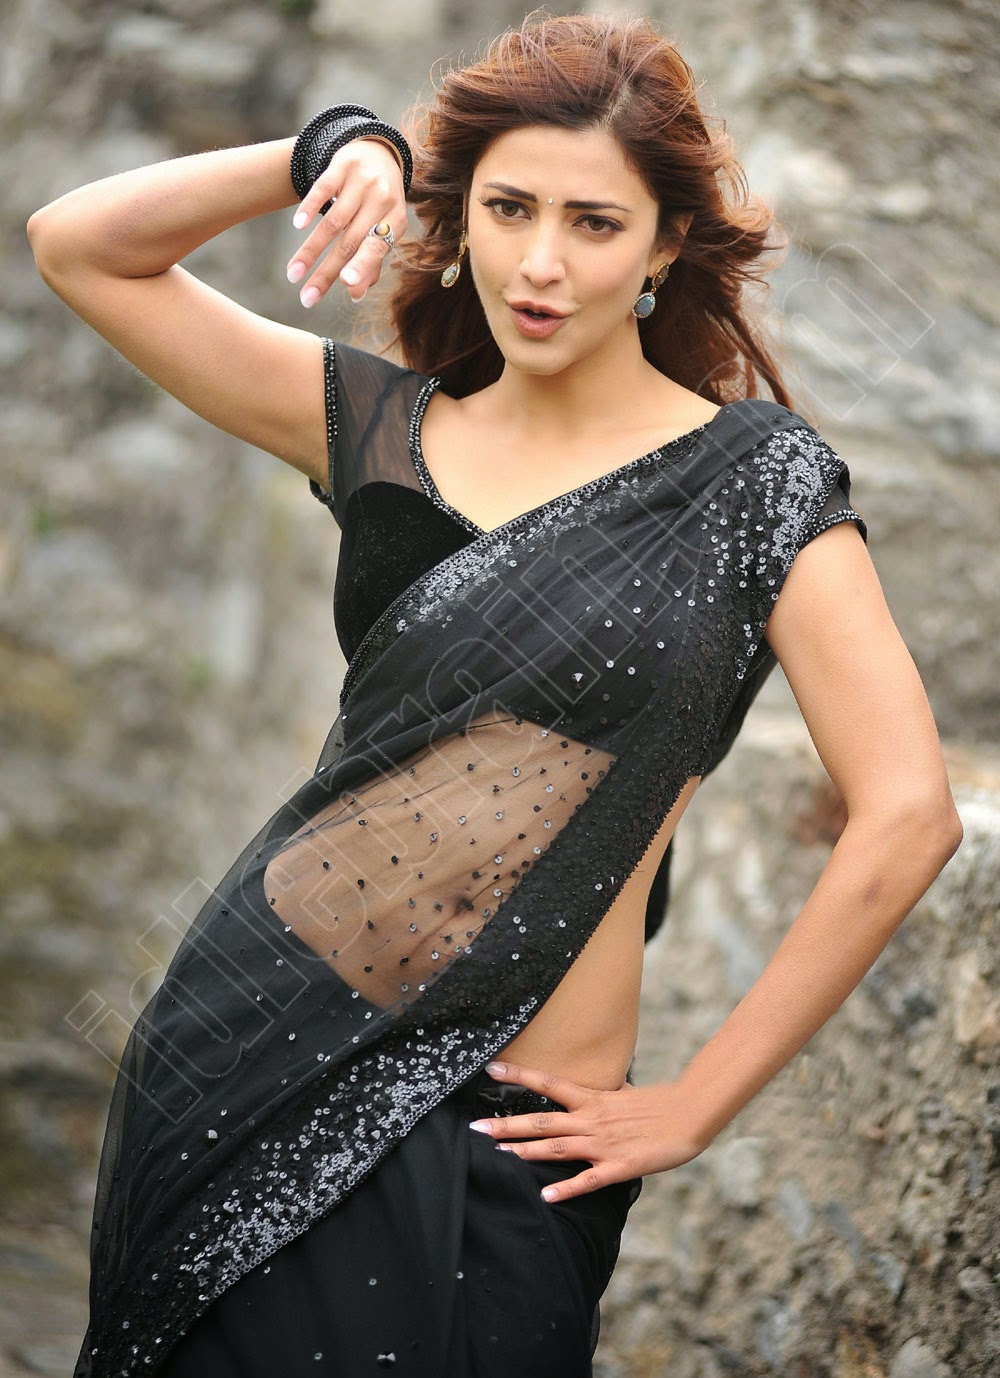 Shruthi hassan hot and sexy